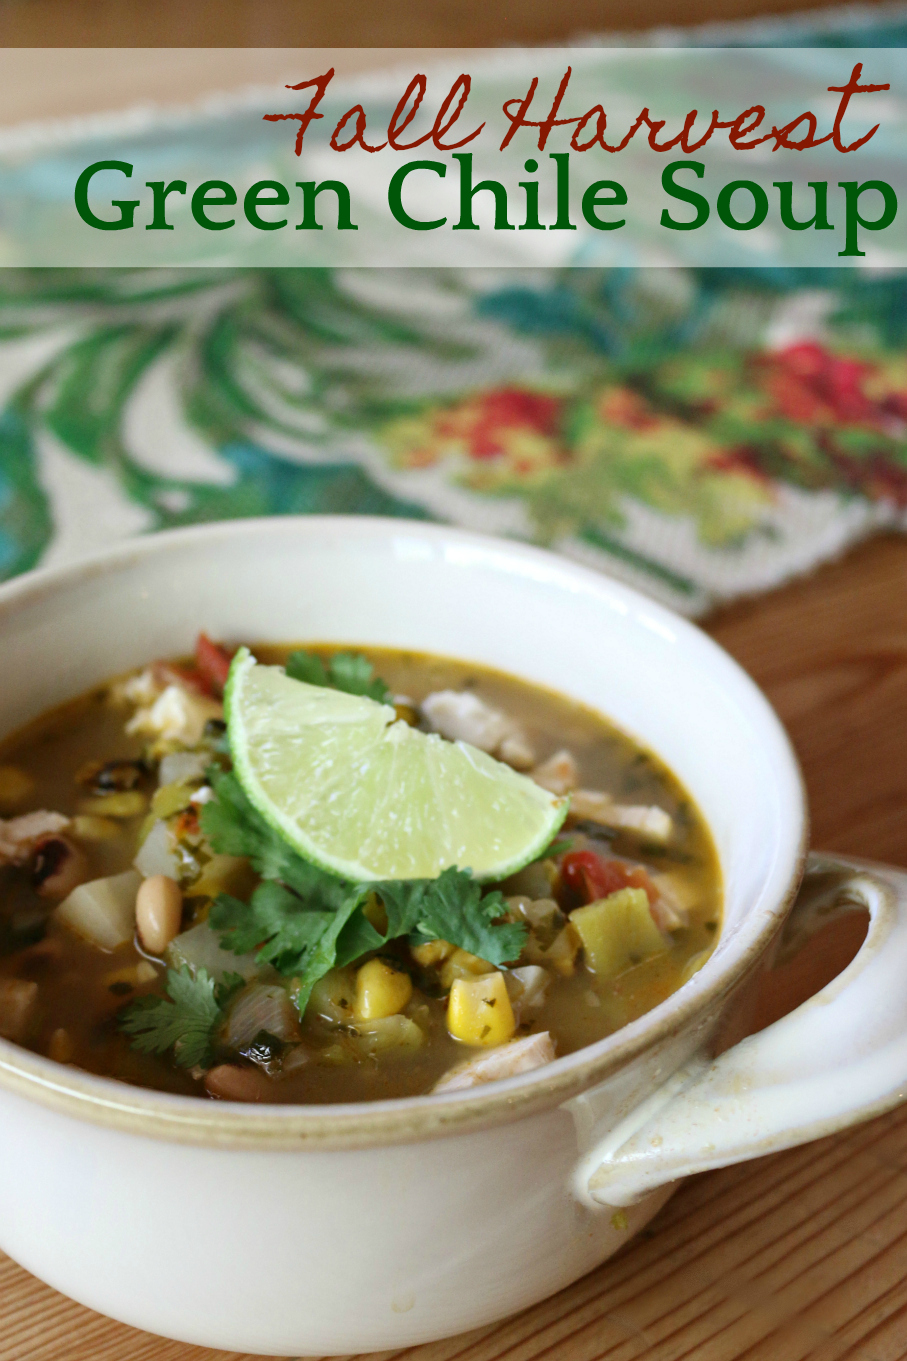 Fall Harvest Green Chile Soup Recipe CeceliasGoodStuff.com Good Food for Good People